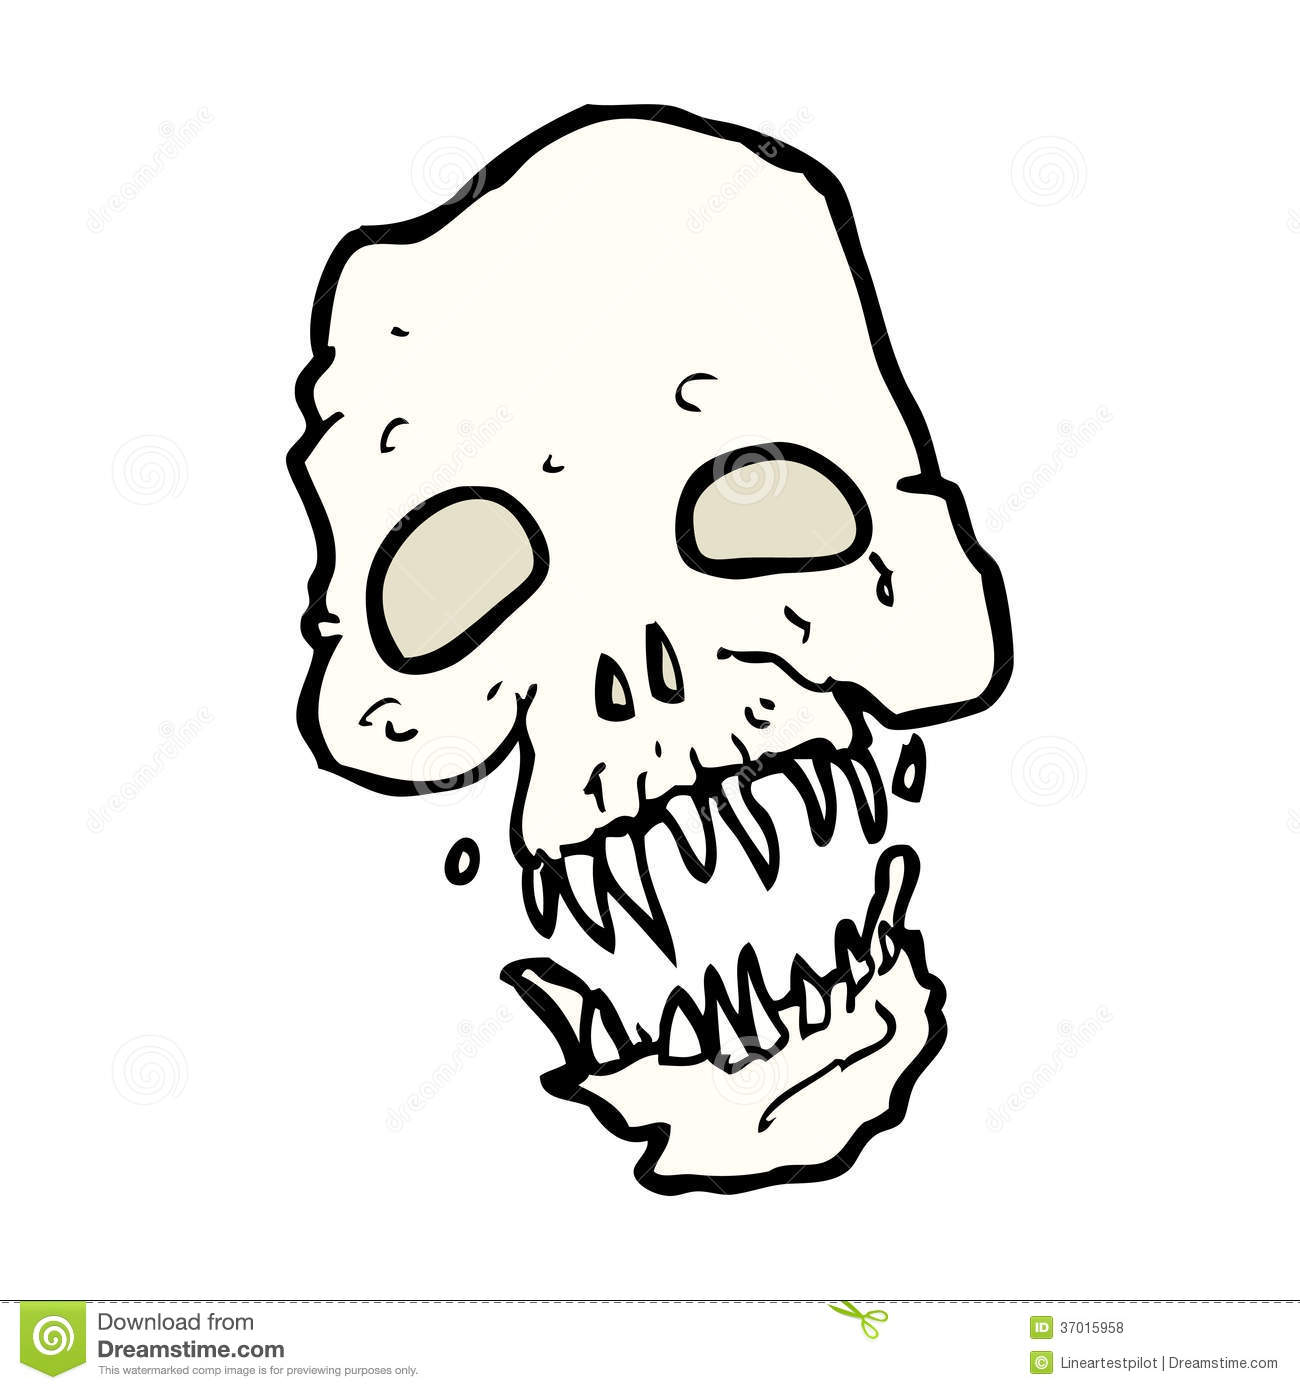 Royalty Free Stock Photos Cartoon Scary Skull Hand Drawn Illustration Retro Style Vector Available Image37015958 on scary halloween music and sounds free